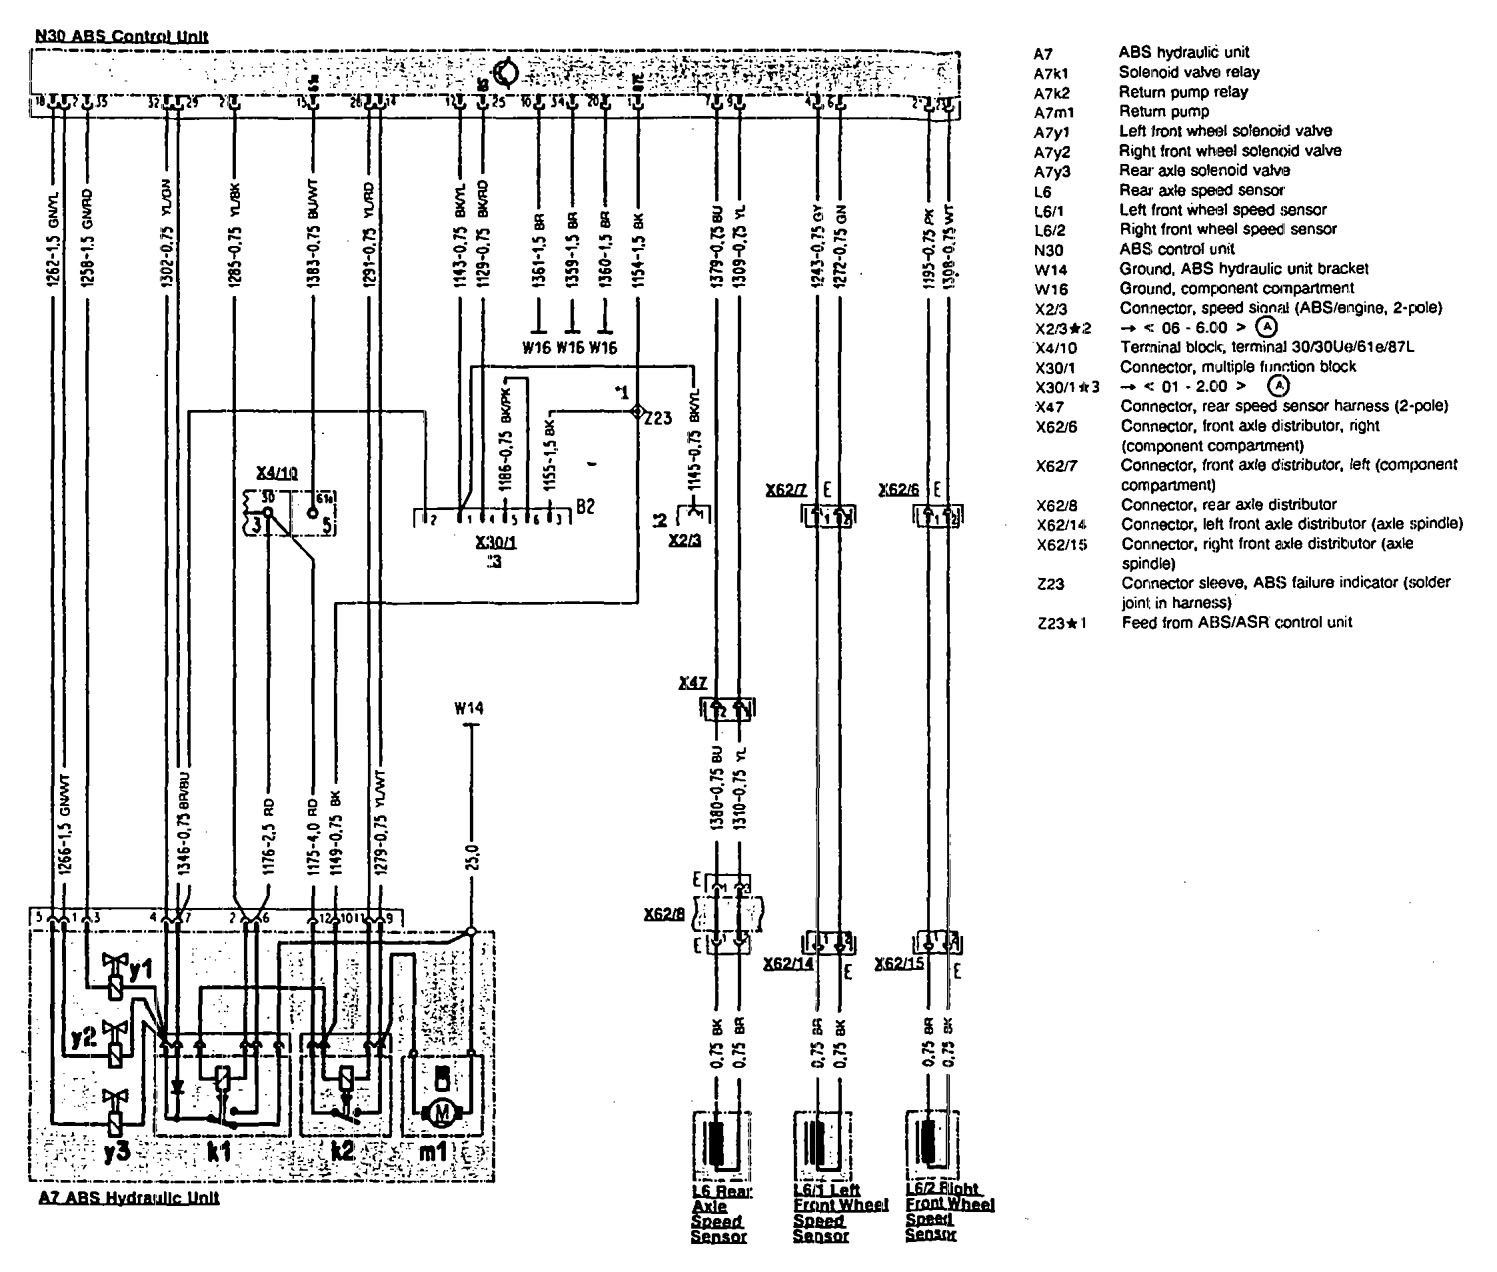 Fiat Punto Abs Wiring Diagram Start Building A 1977 124 Mercedes Benz 500sl 1990 1992 Diagrams Carknowledge Rh Info 1979 Spider Ignition Transmission